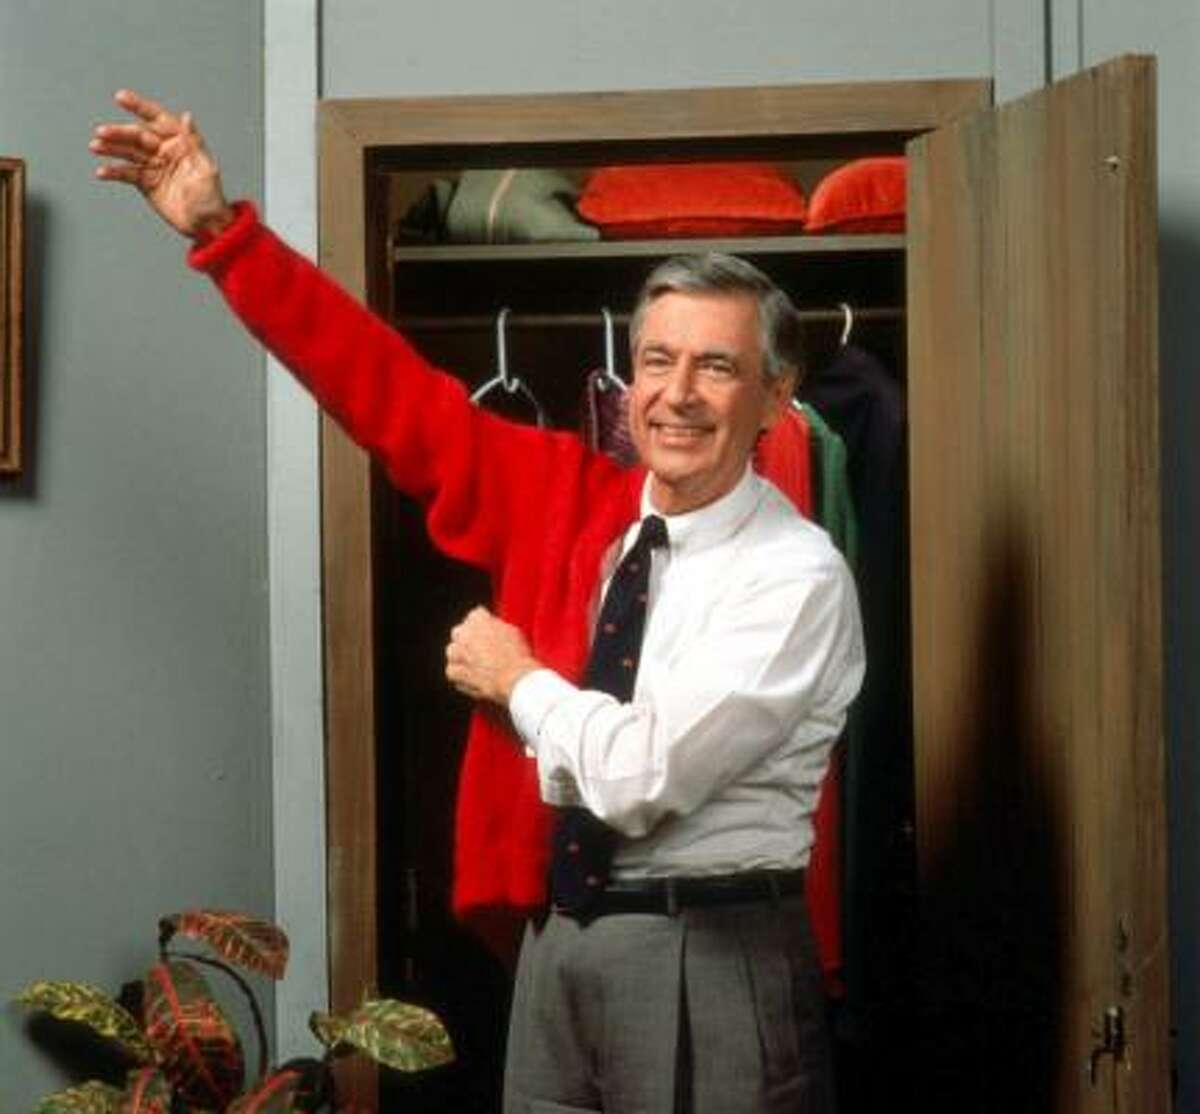 Urban myth: Fred Rogers, host of children's TV show 'Mr Roger's Neighborhood', was a sniper (or Navy Seal) during the Vietnam War Please won't you be his neighbor?